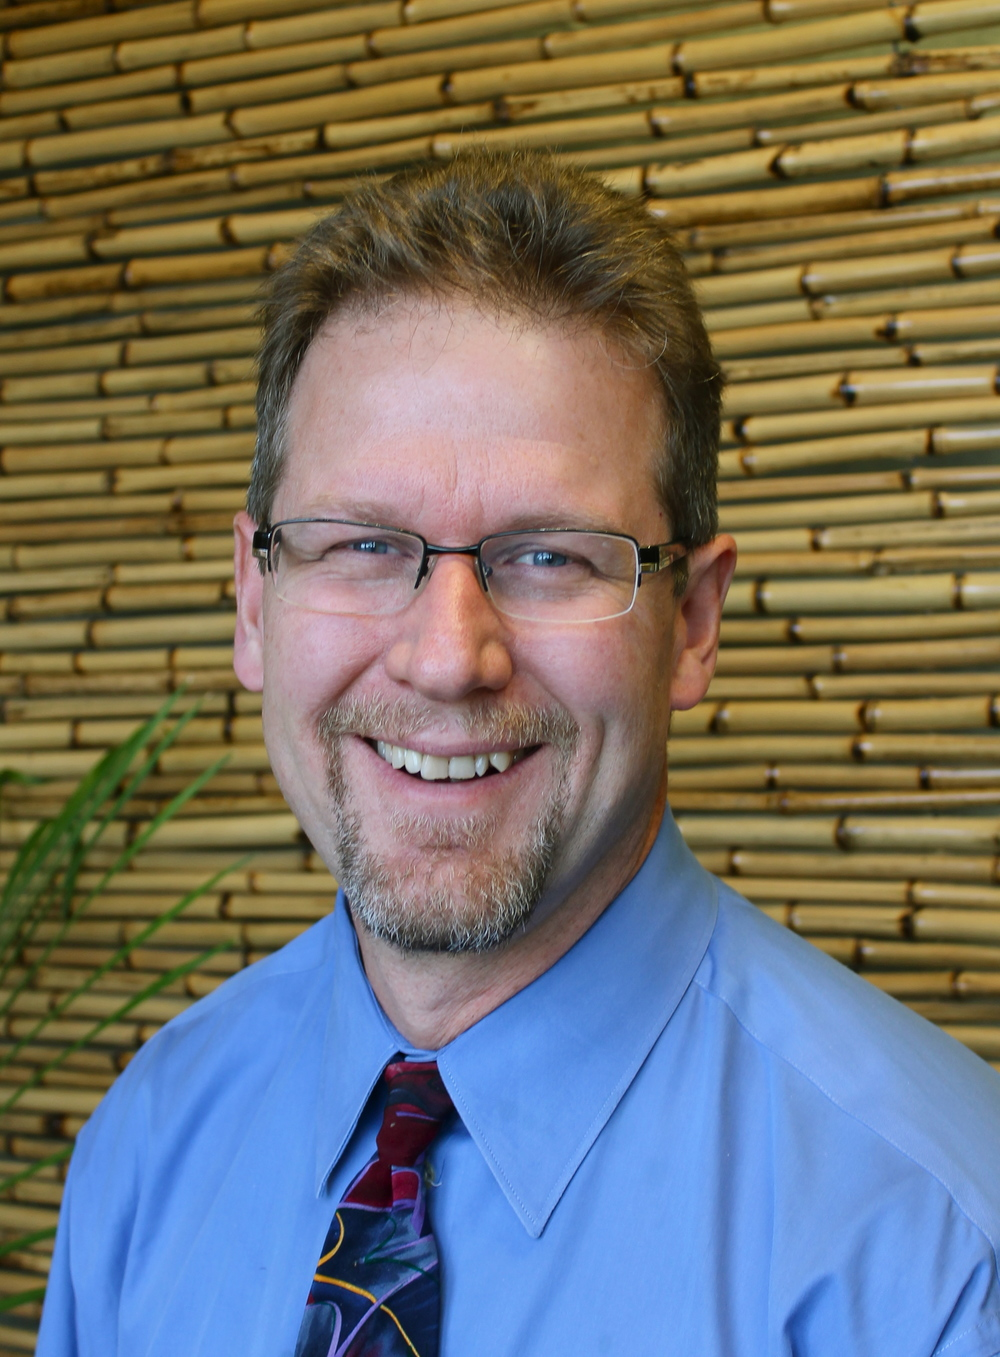 Dr. Scott Luper, ND